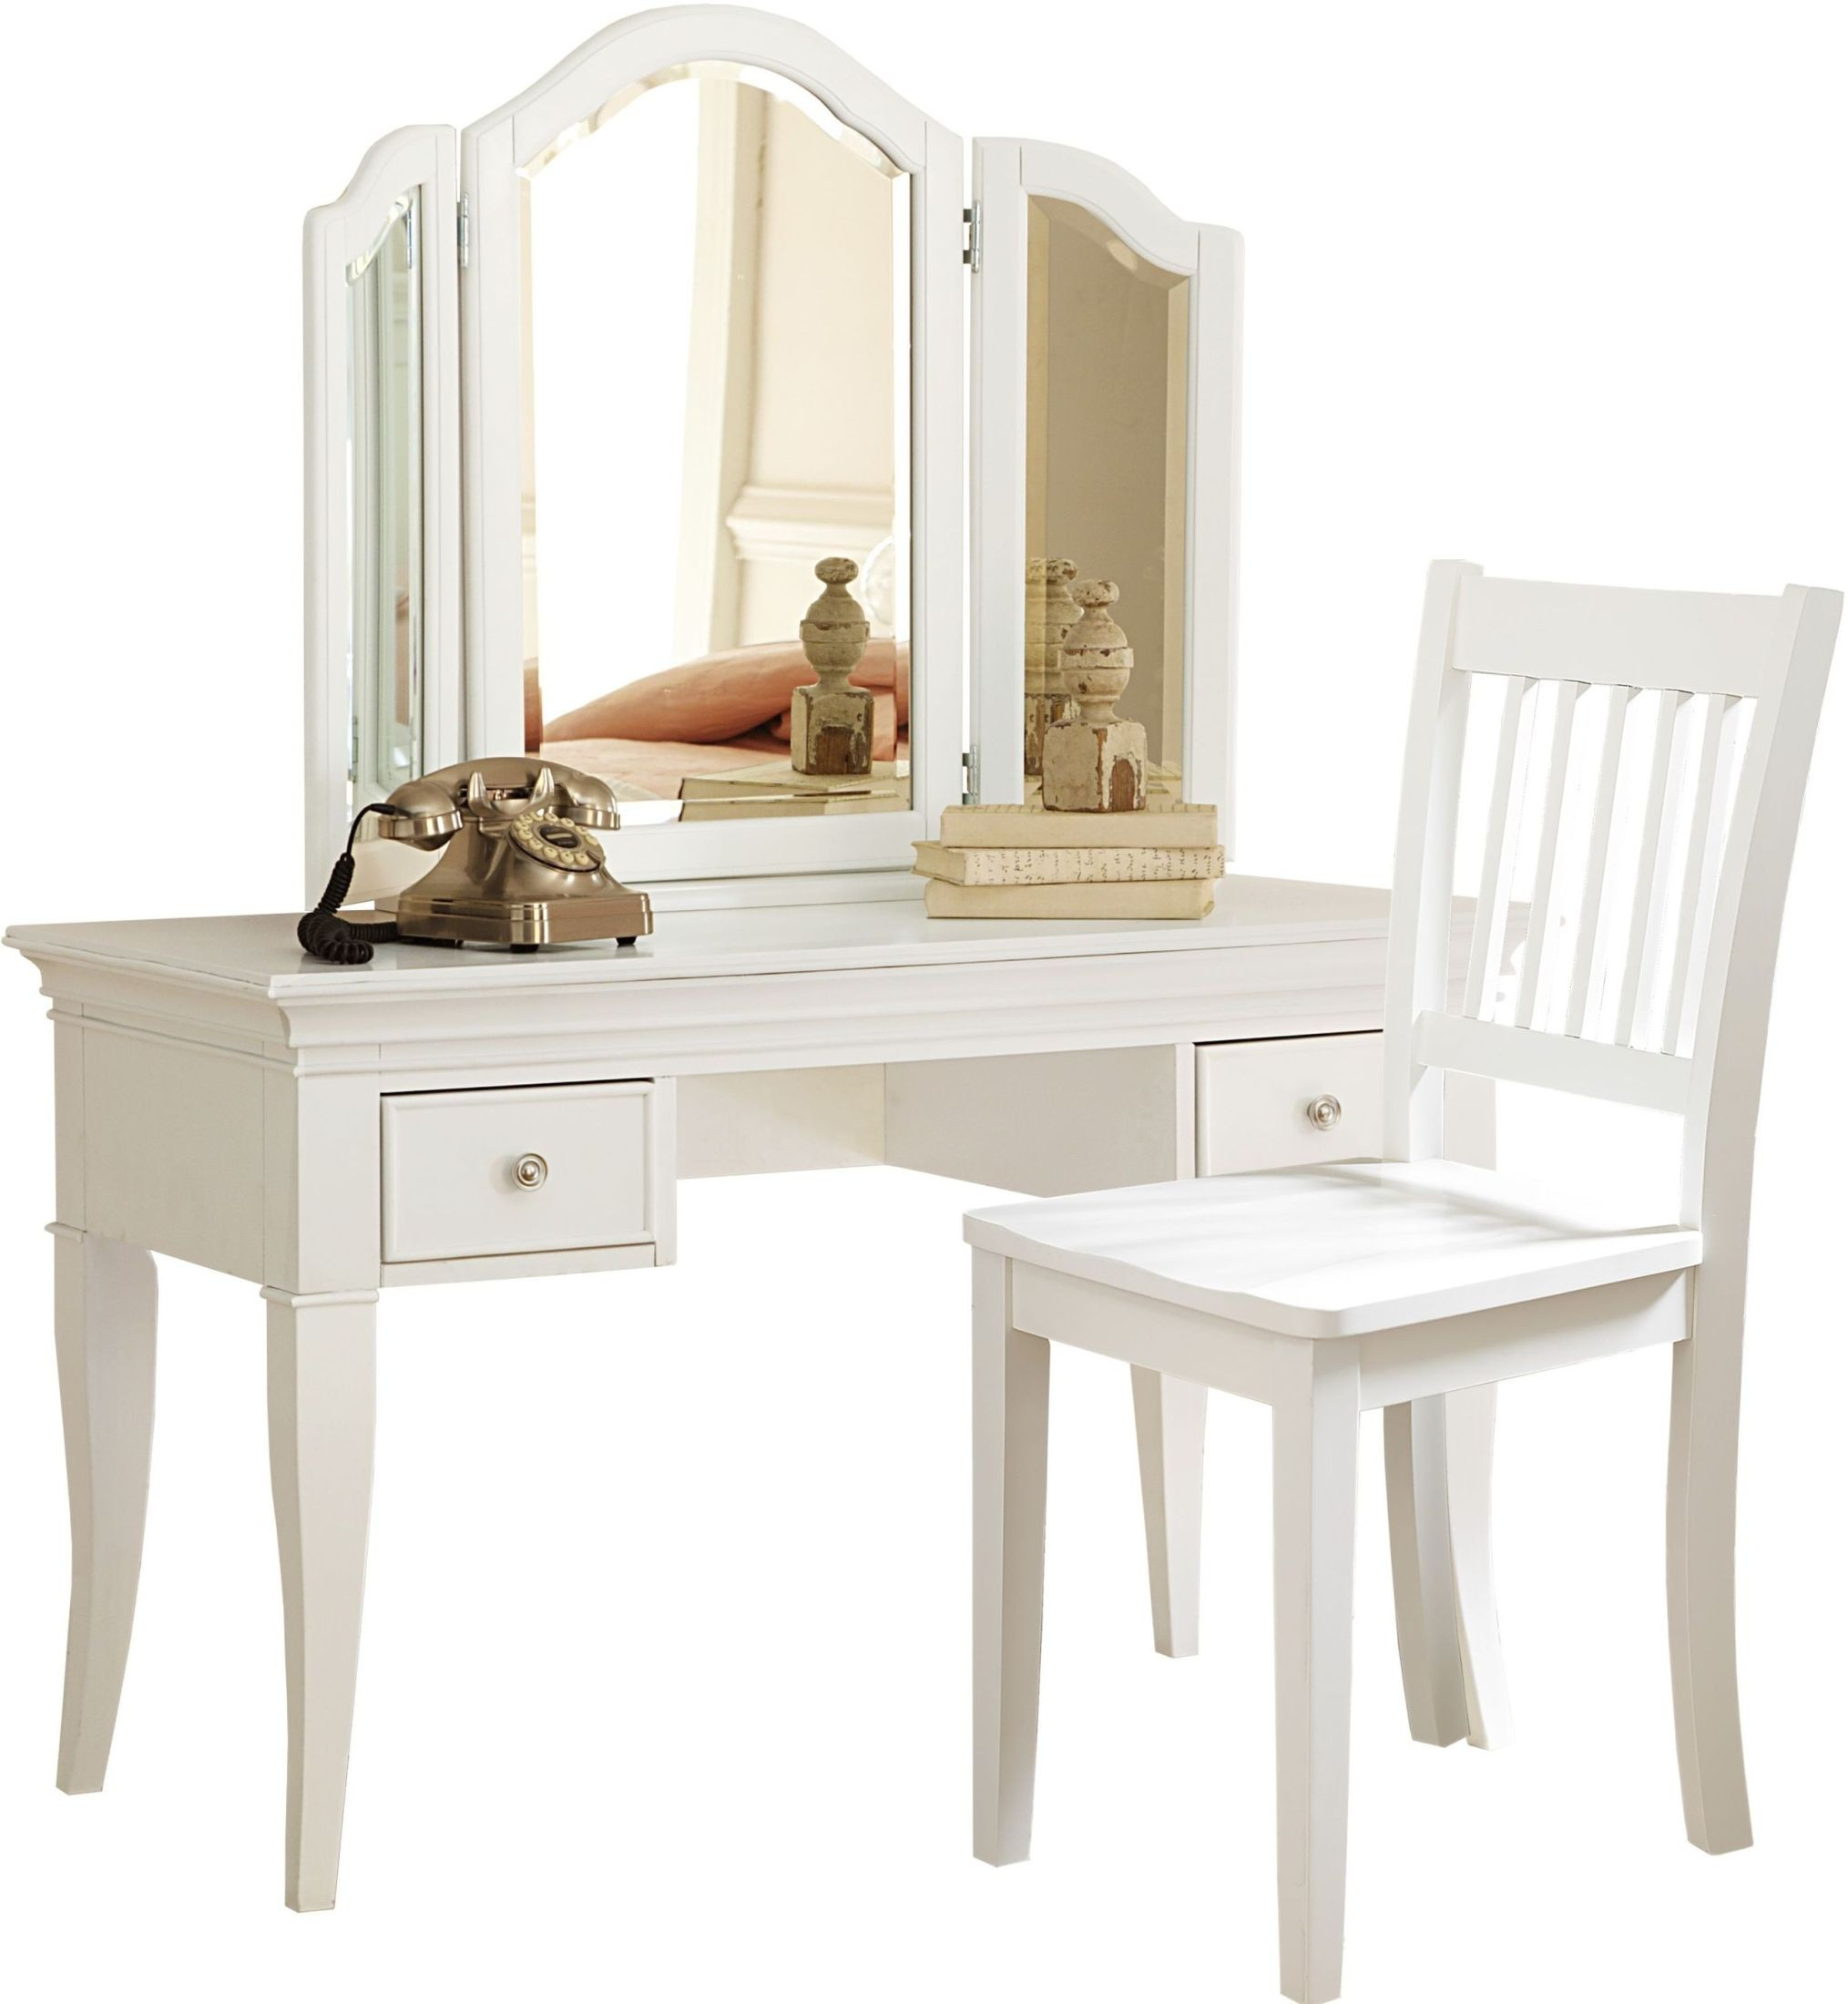 walnut street white desk and storage vanity with mirror chair from ne kids coleman furniture. Black Bedroom Furniture Sets. Home Design Ideas